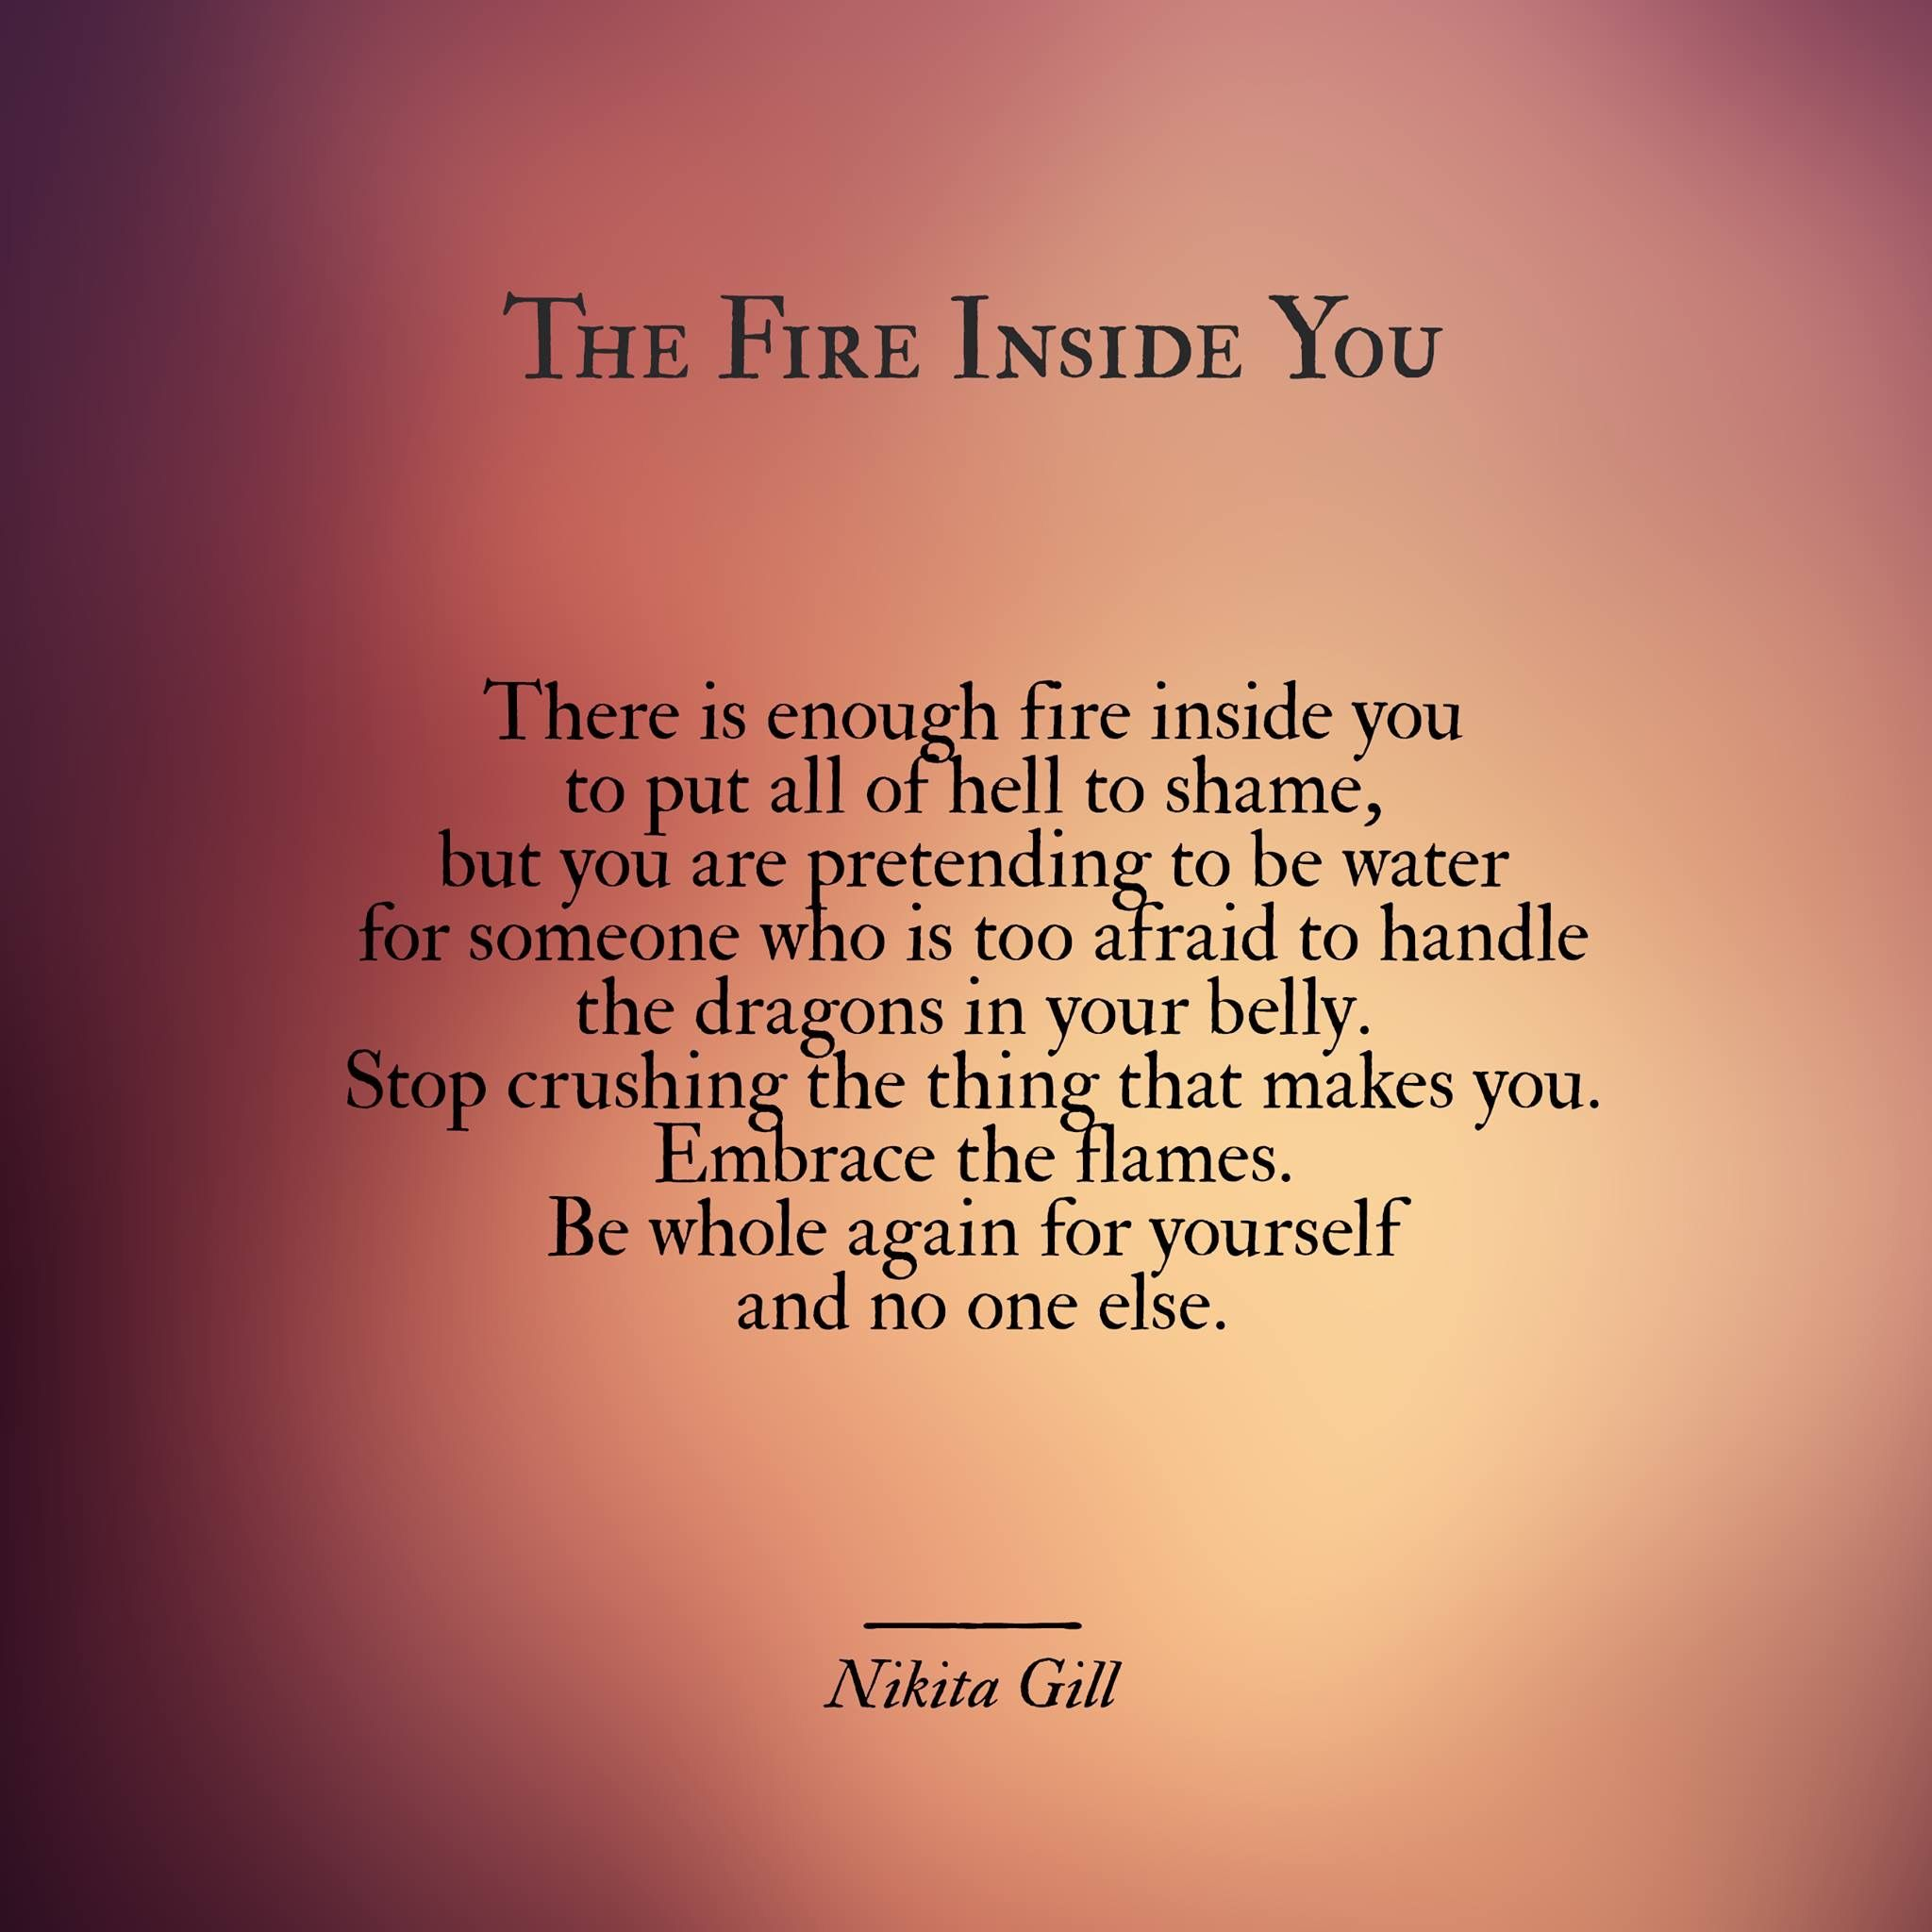 Citaten Weergeven Xbox One : The fire inside you nikita gill quotesu003c3 quotes life quotes